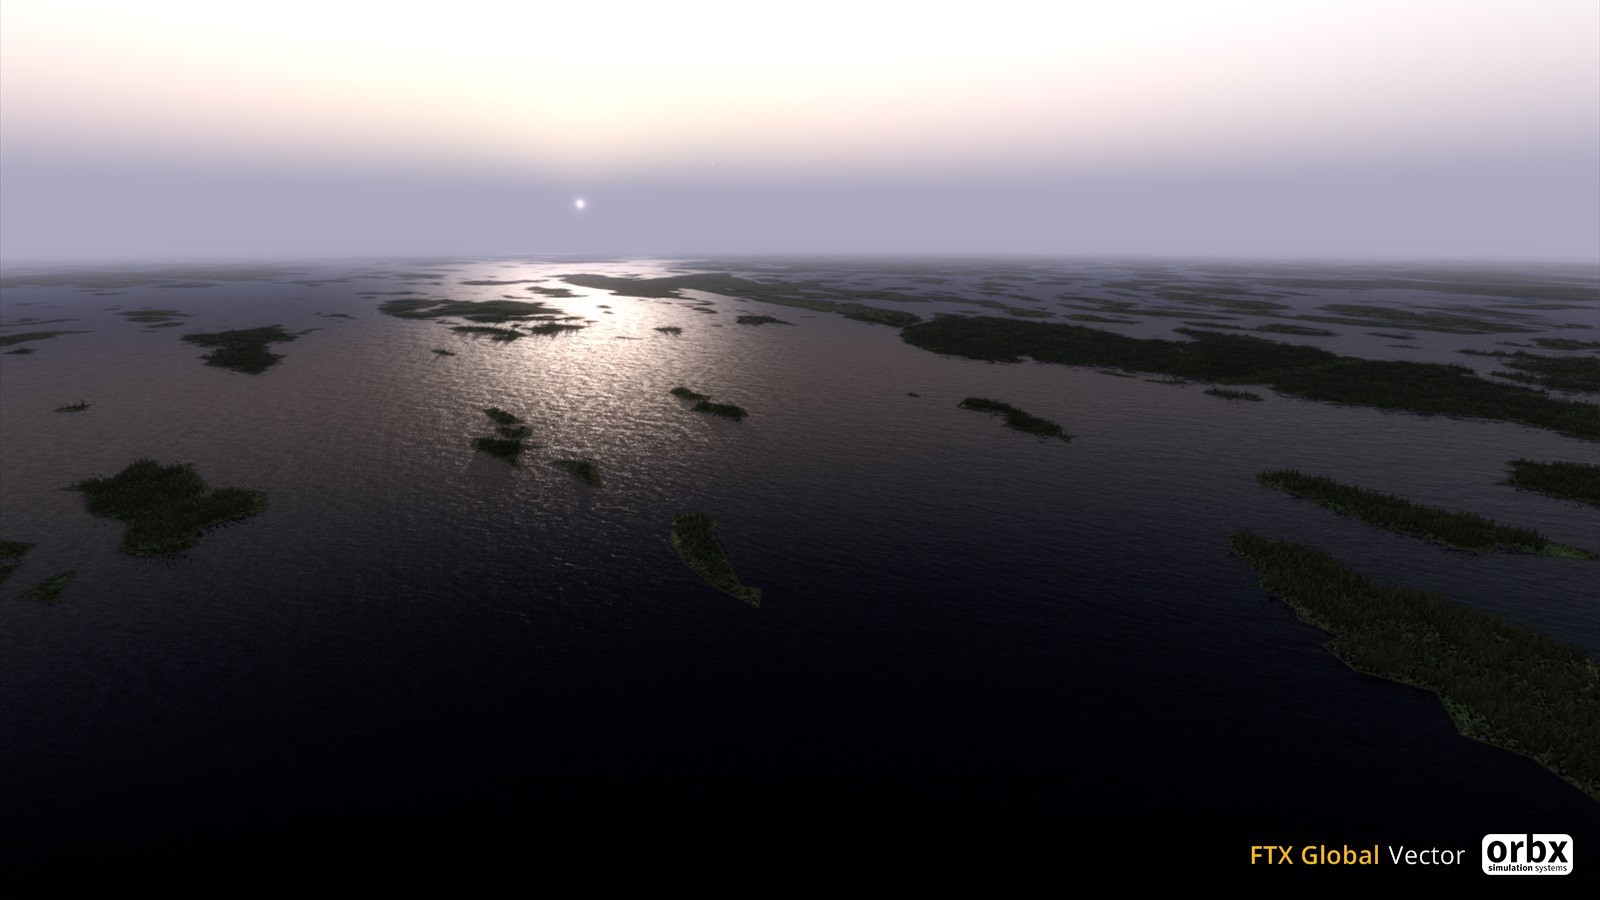 png library download Orbx vector. Updates ftx global to